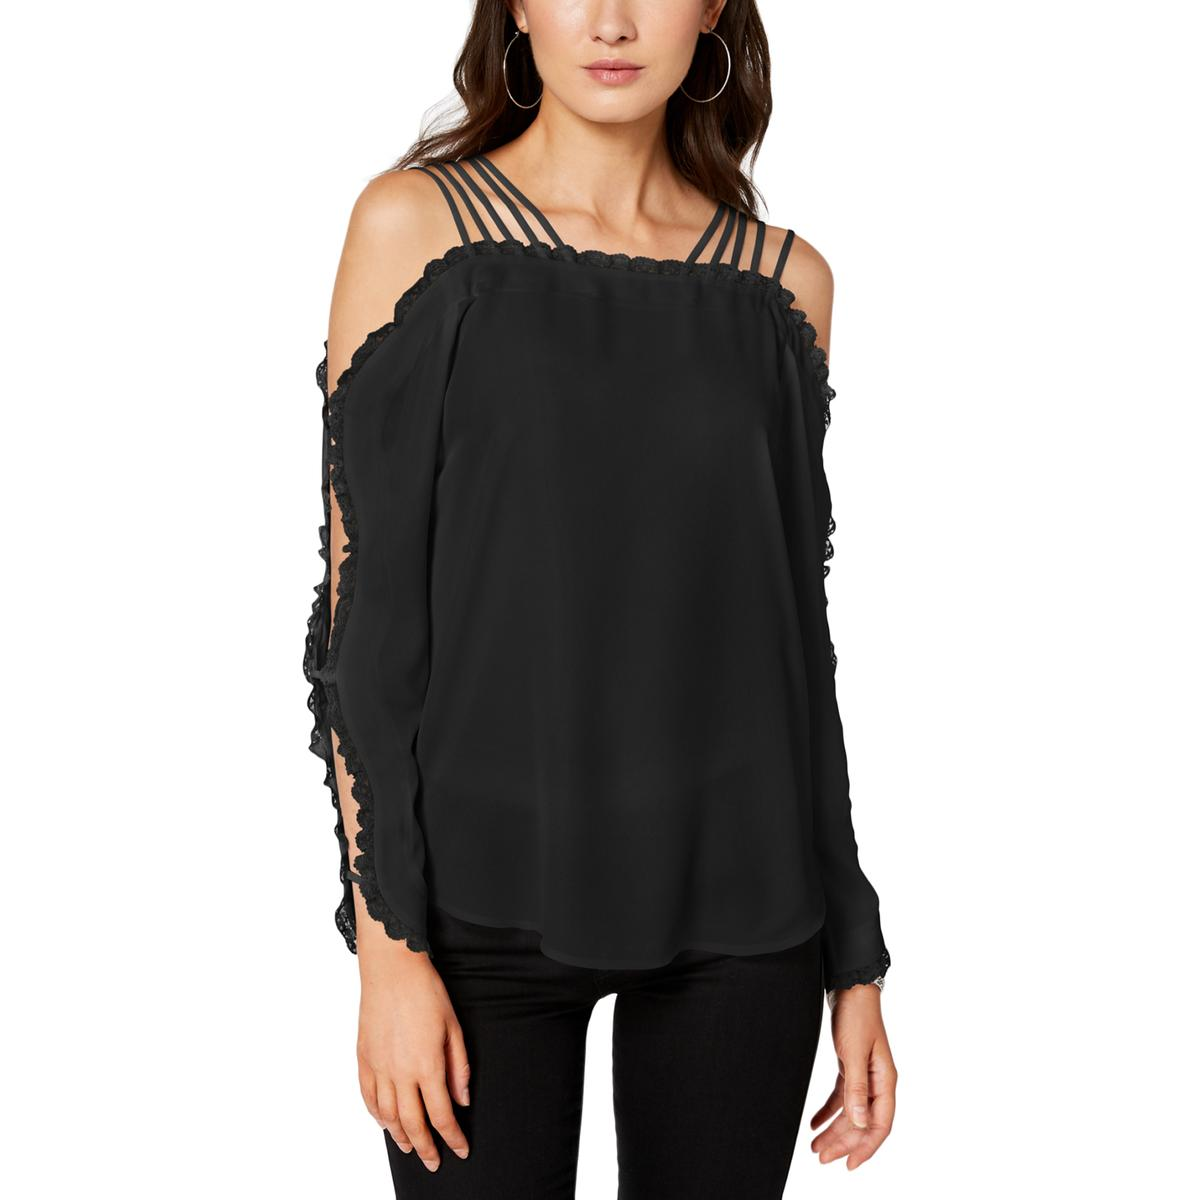 ab7d7fb0ed3 XOXO Juniors Womens Off-The-Shoulder Lace Trim Pullover Top